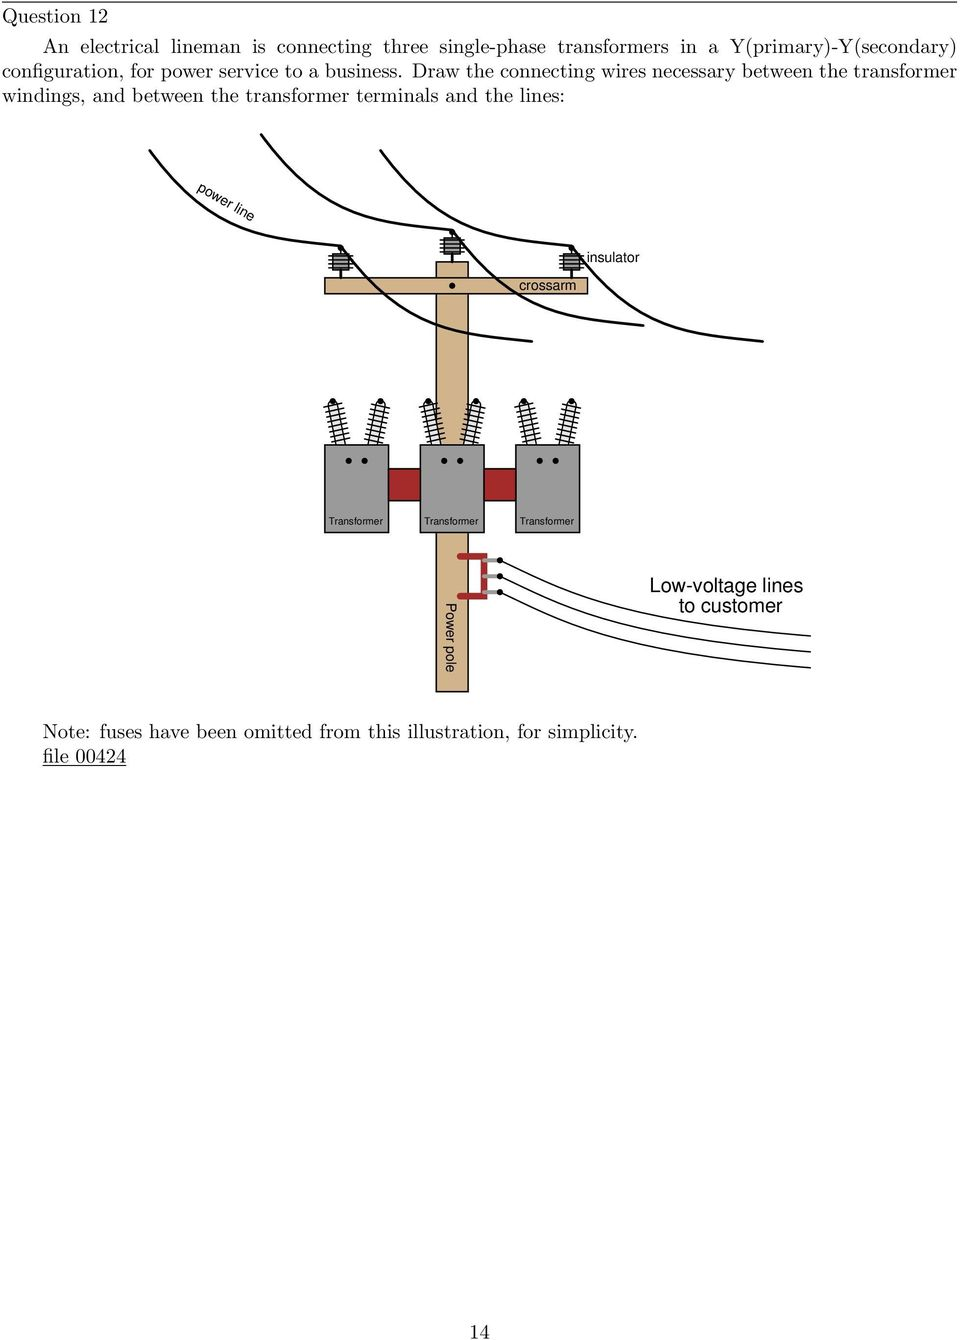 hight resolution of draw the connecting wires necessary between the transformer windings and between the transformer terminals and